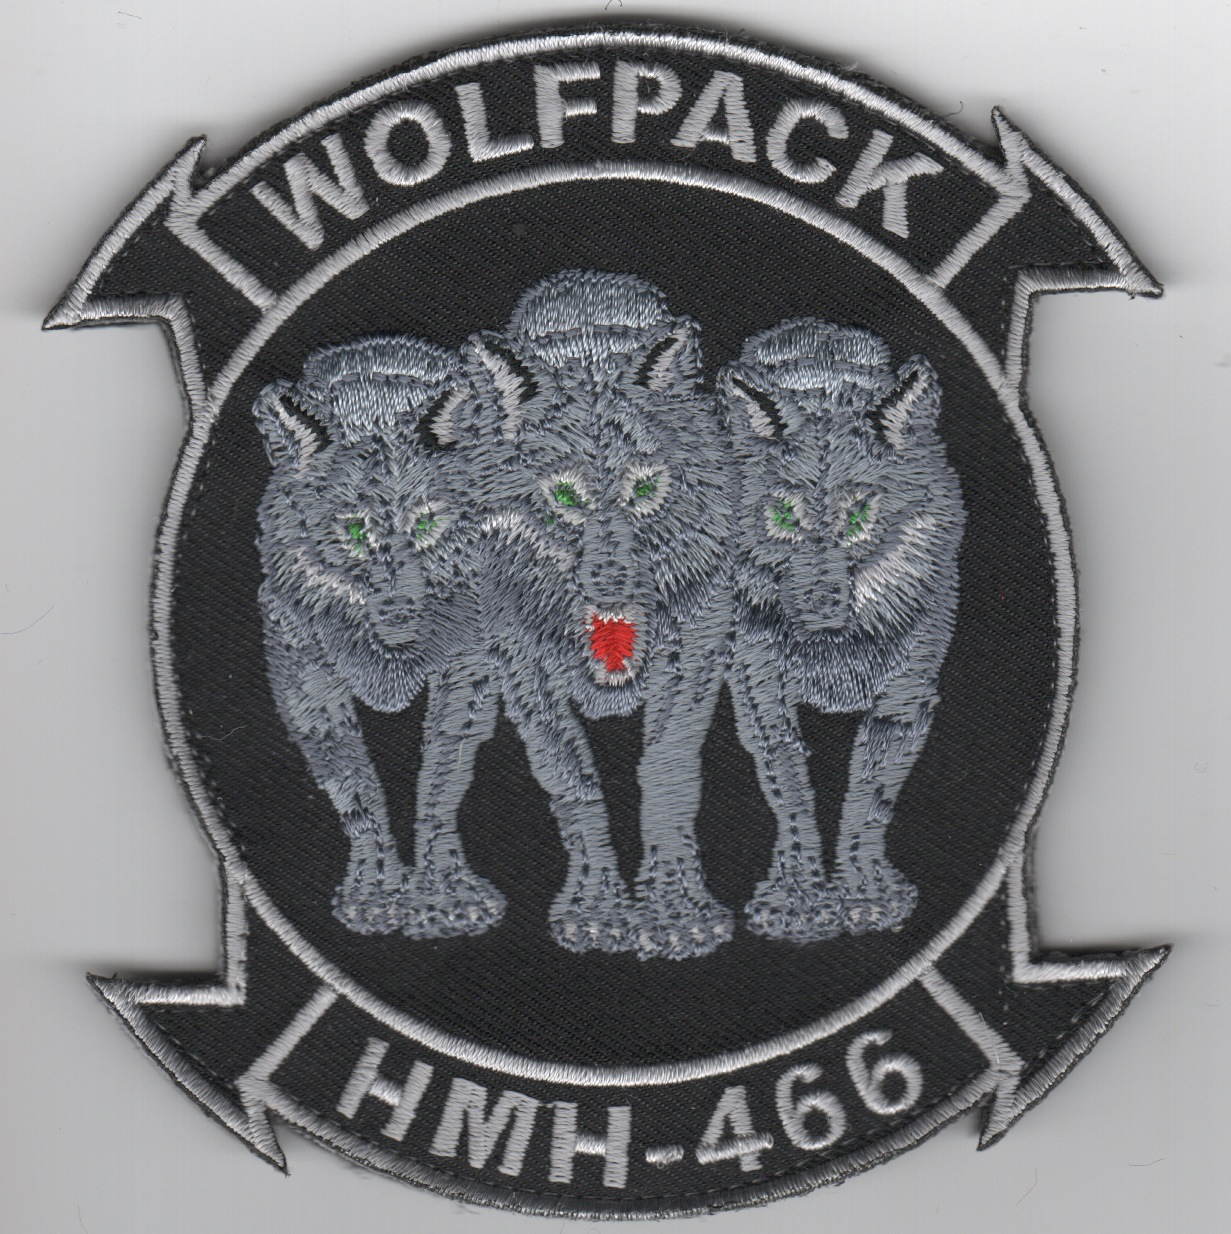 HMH-466 '3-Wolves' Squadron Patch (Black)